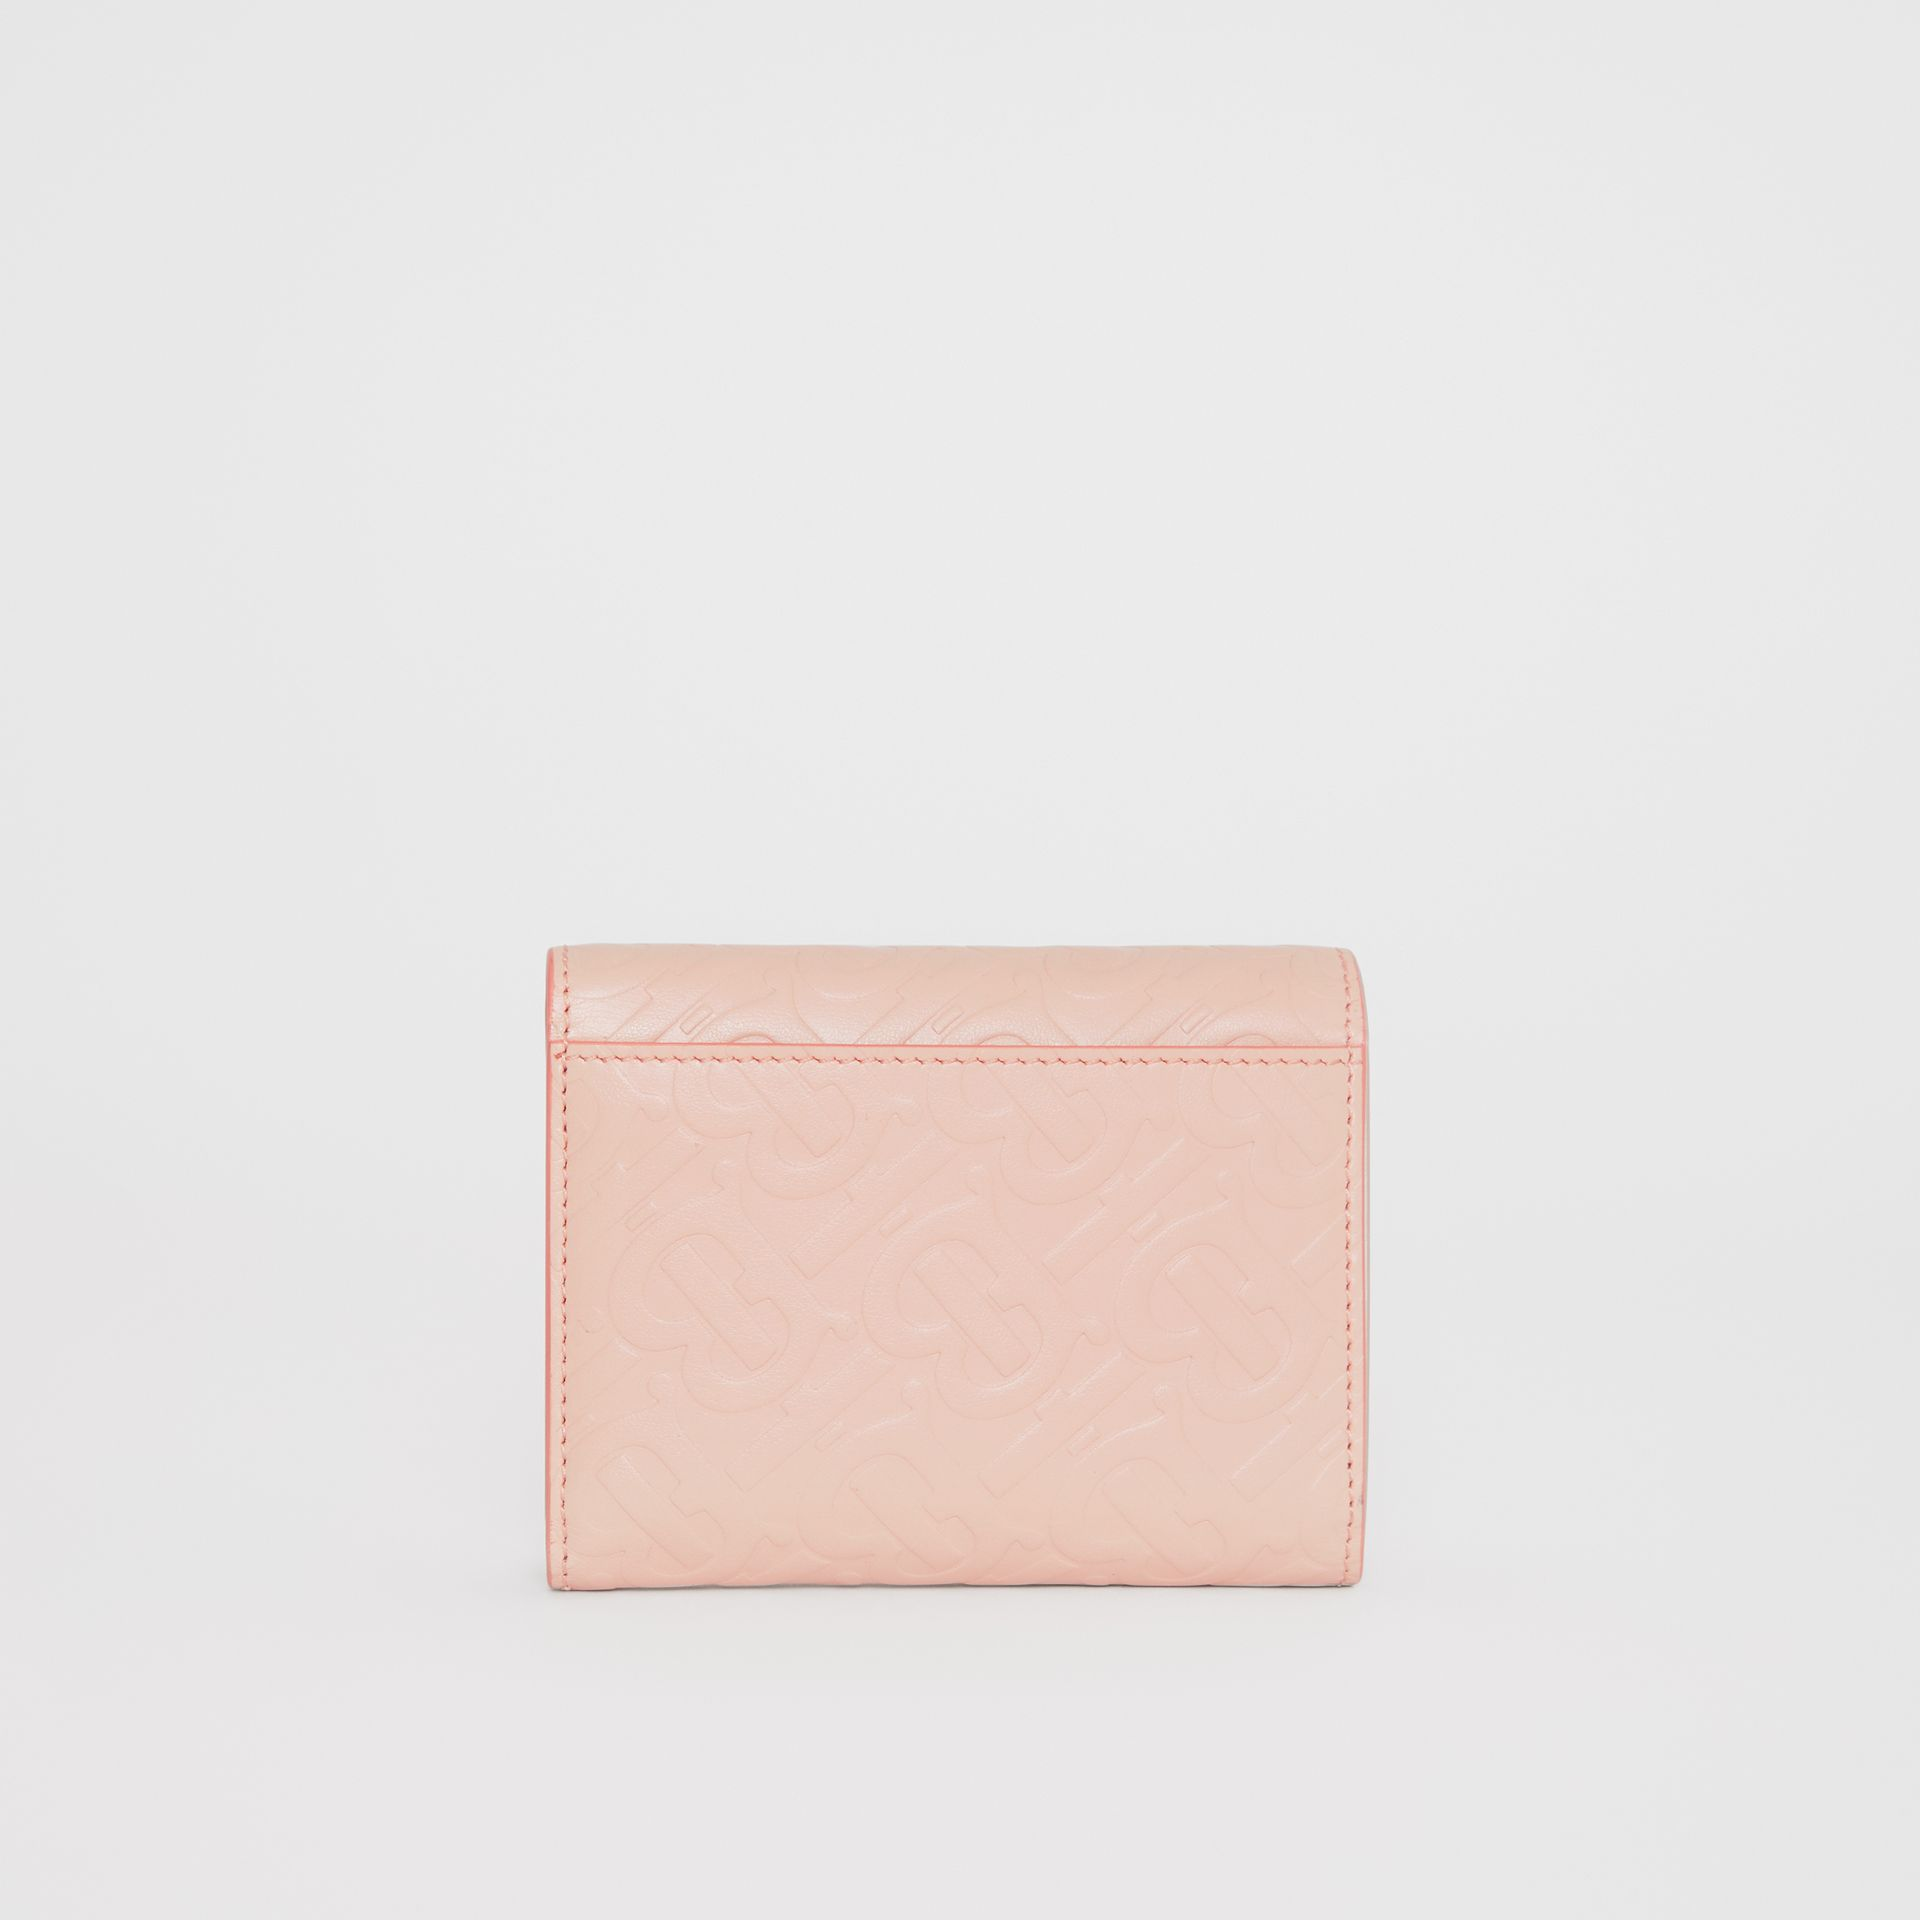 Small Monogram Leather Folding Wallet in Rose Beige | Burberry Australia - gallery image 4